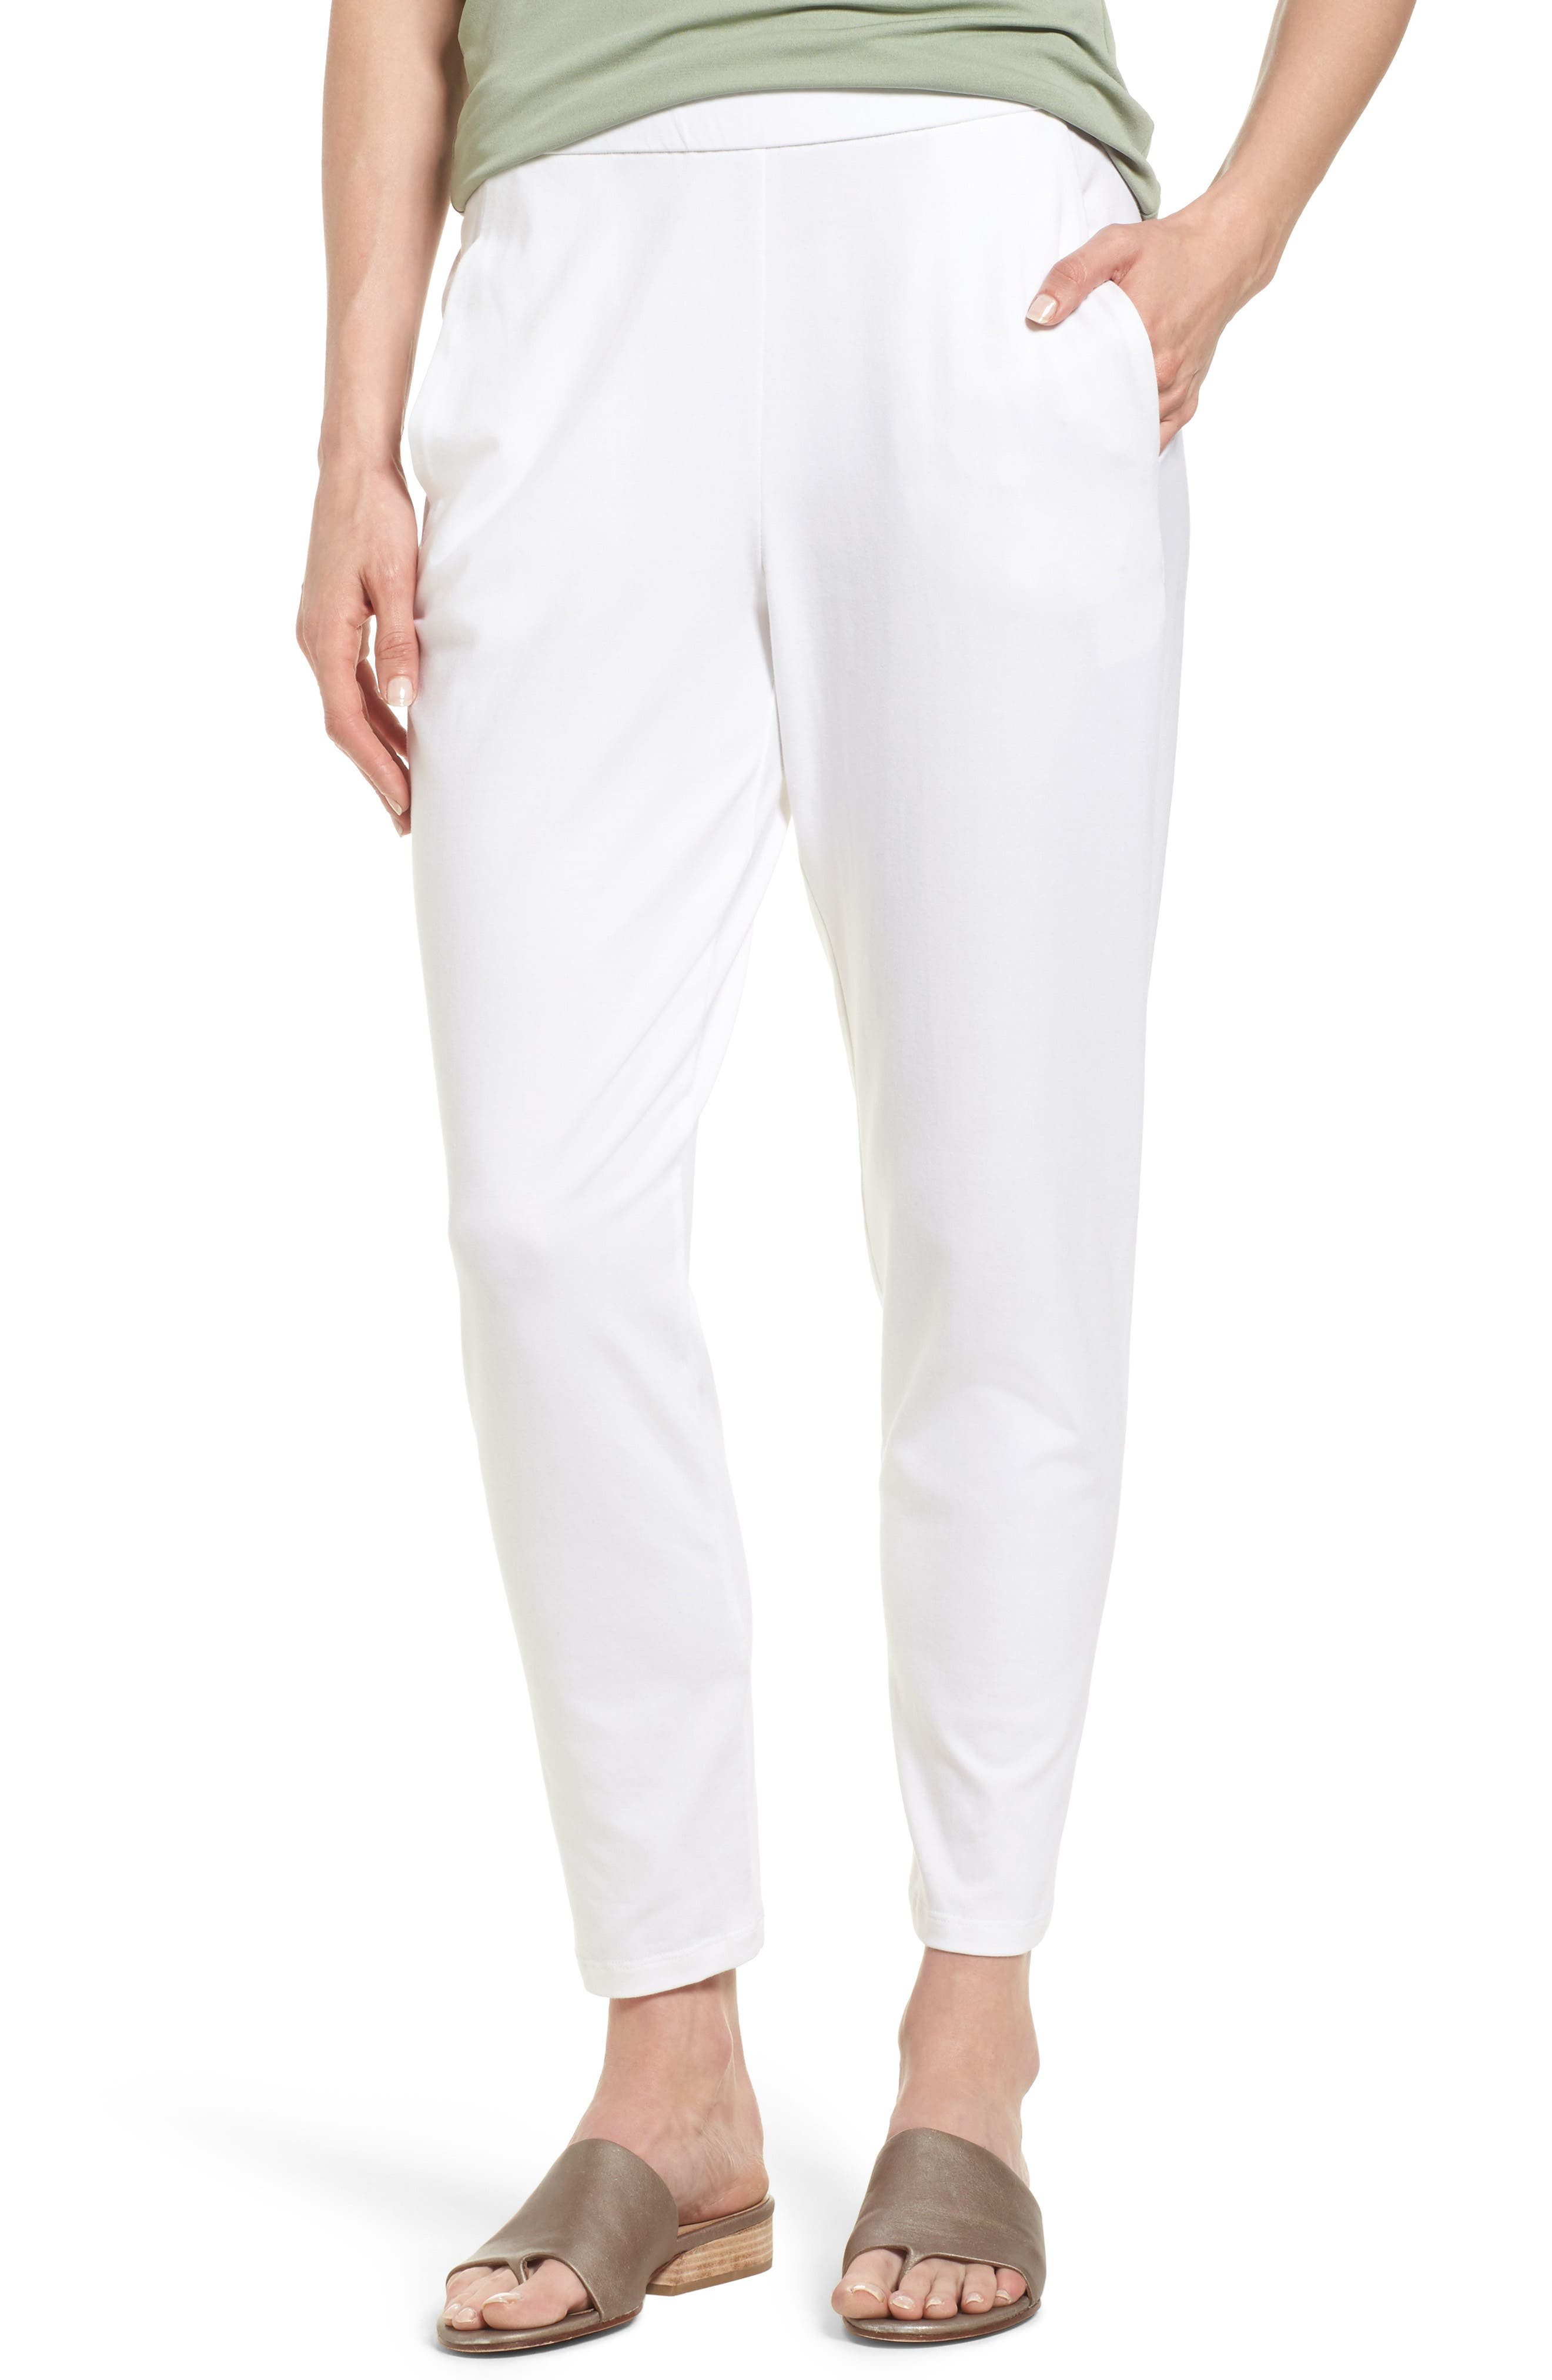 Eileen Fisher Stretch Organic Cotton Slim Slouchy Ankle Pants (Regular & Petite)